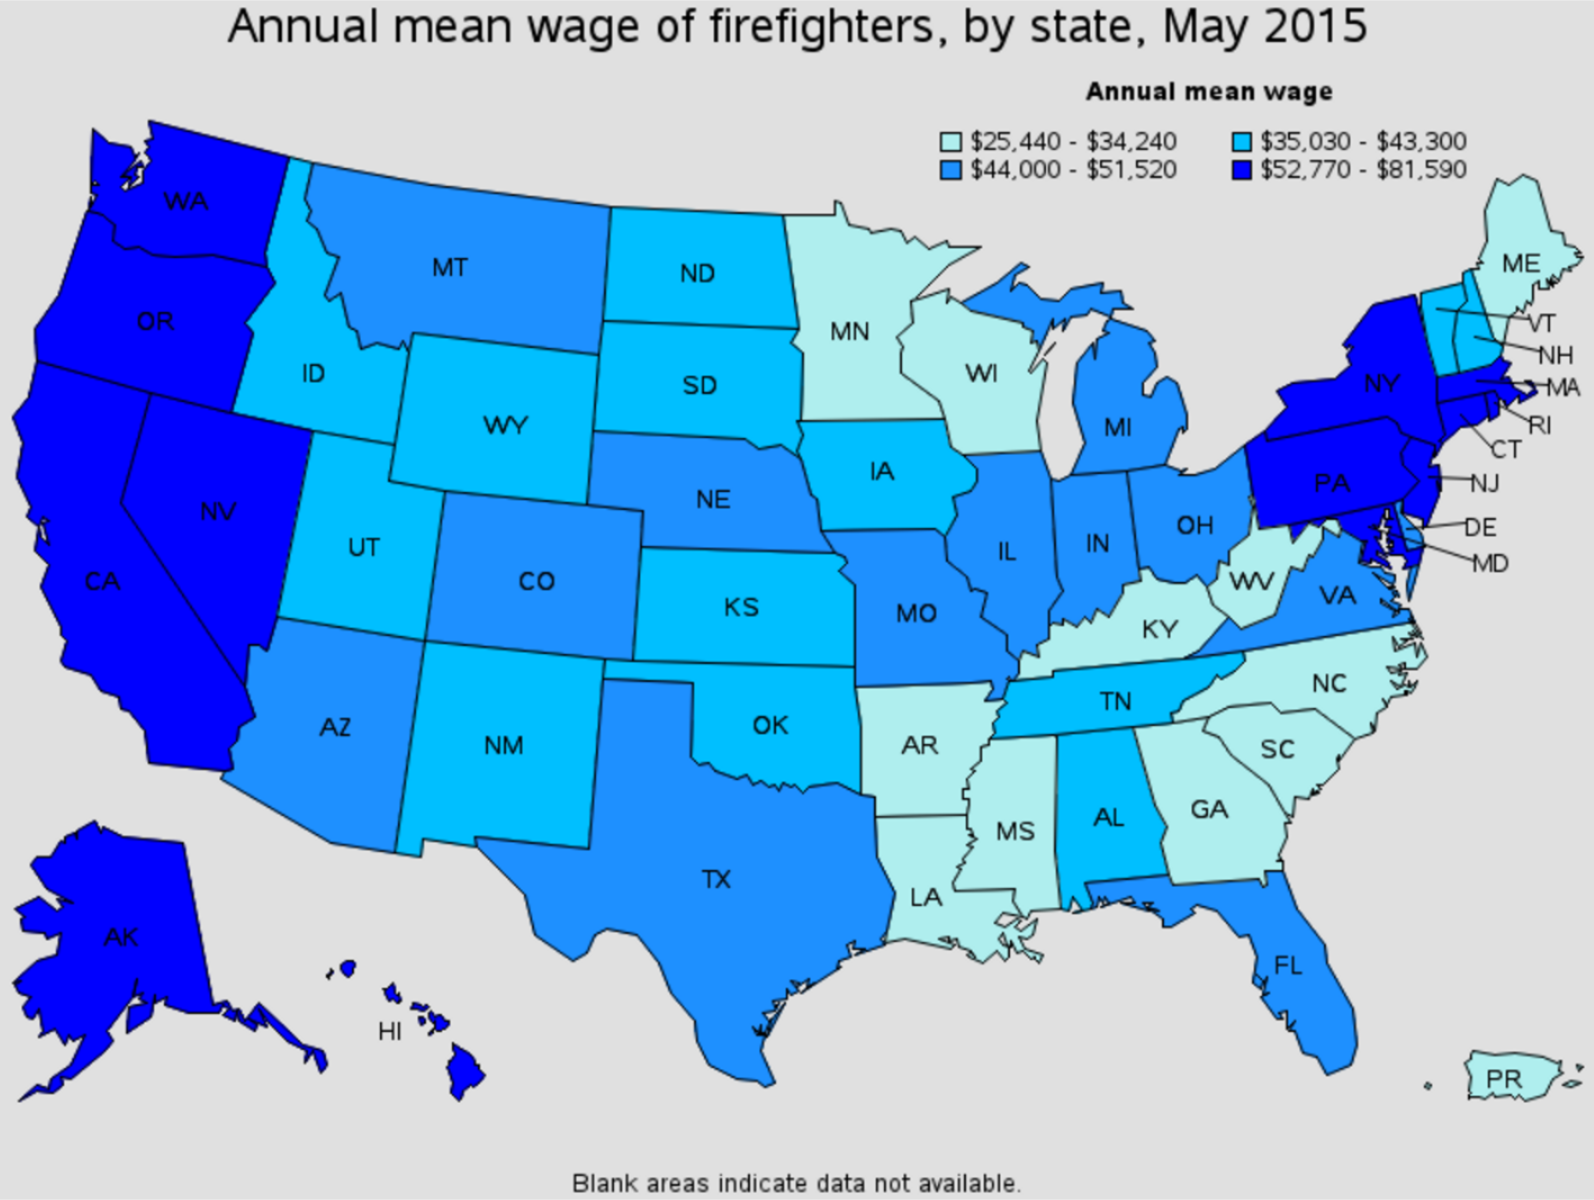 firefighter average salary by state Anchorage Alaska